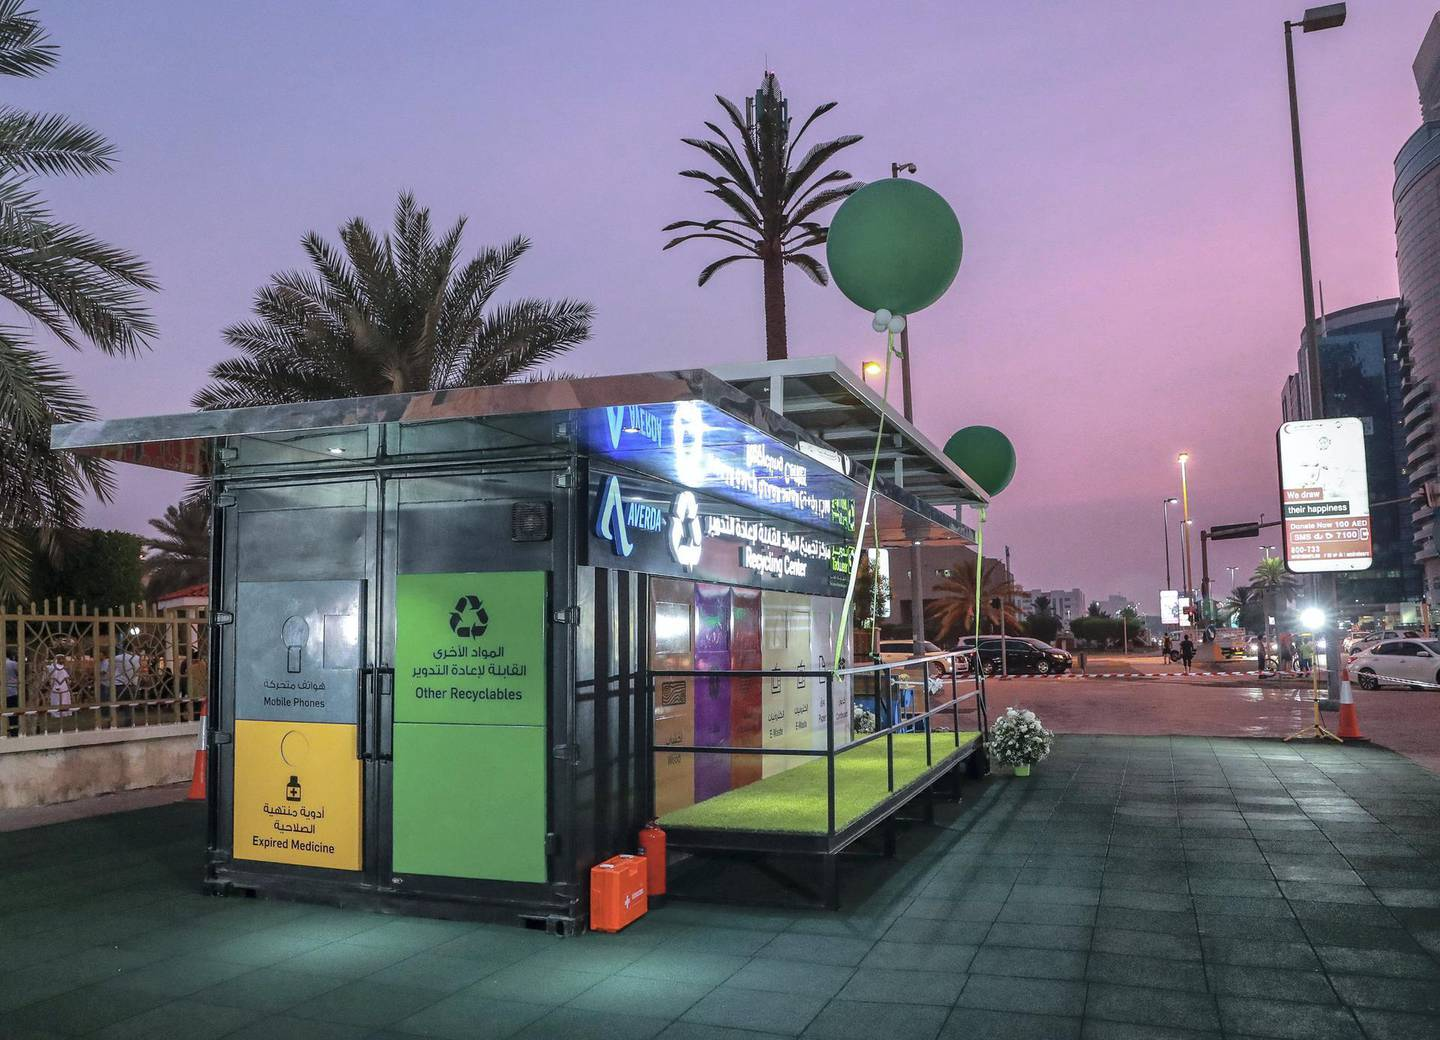 Abu Dhabi, U.A.E., July 3, 2018.   The Center of Waste Management – Abu Dhabi (Tadweer), the opening of the first civic amenity in Abu Dhabi to promote waste segregation at source, in presence of His Excellency Thani Ahmed Al-Zeyoudi, Minister of Climate Change and Environment at the Al Khalidiya Park. Victor Besa / The NationalReporter - Haneen DajaniSection:  NA